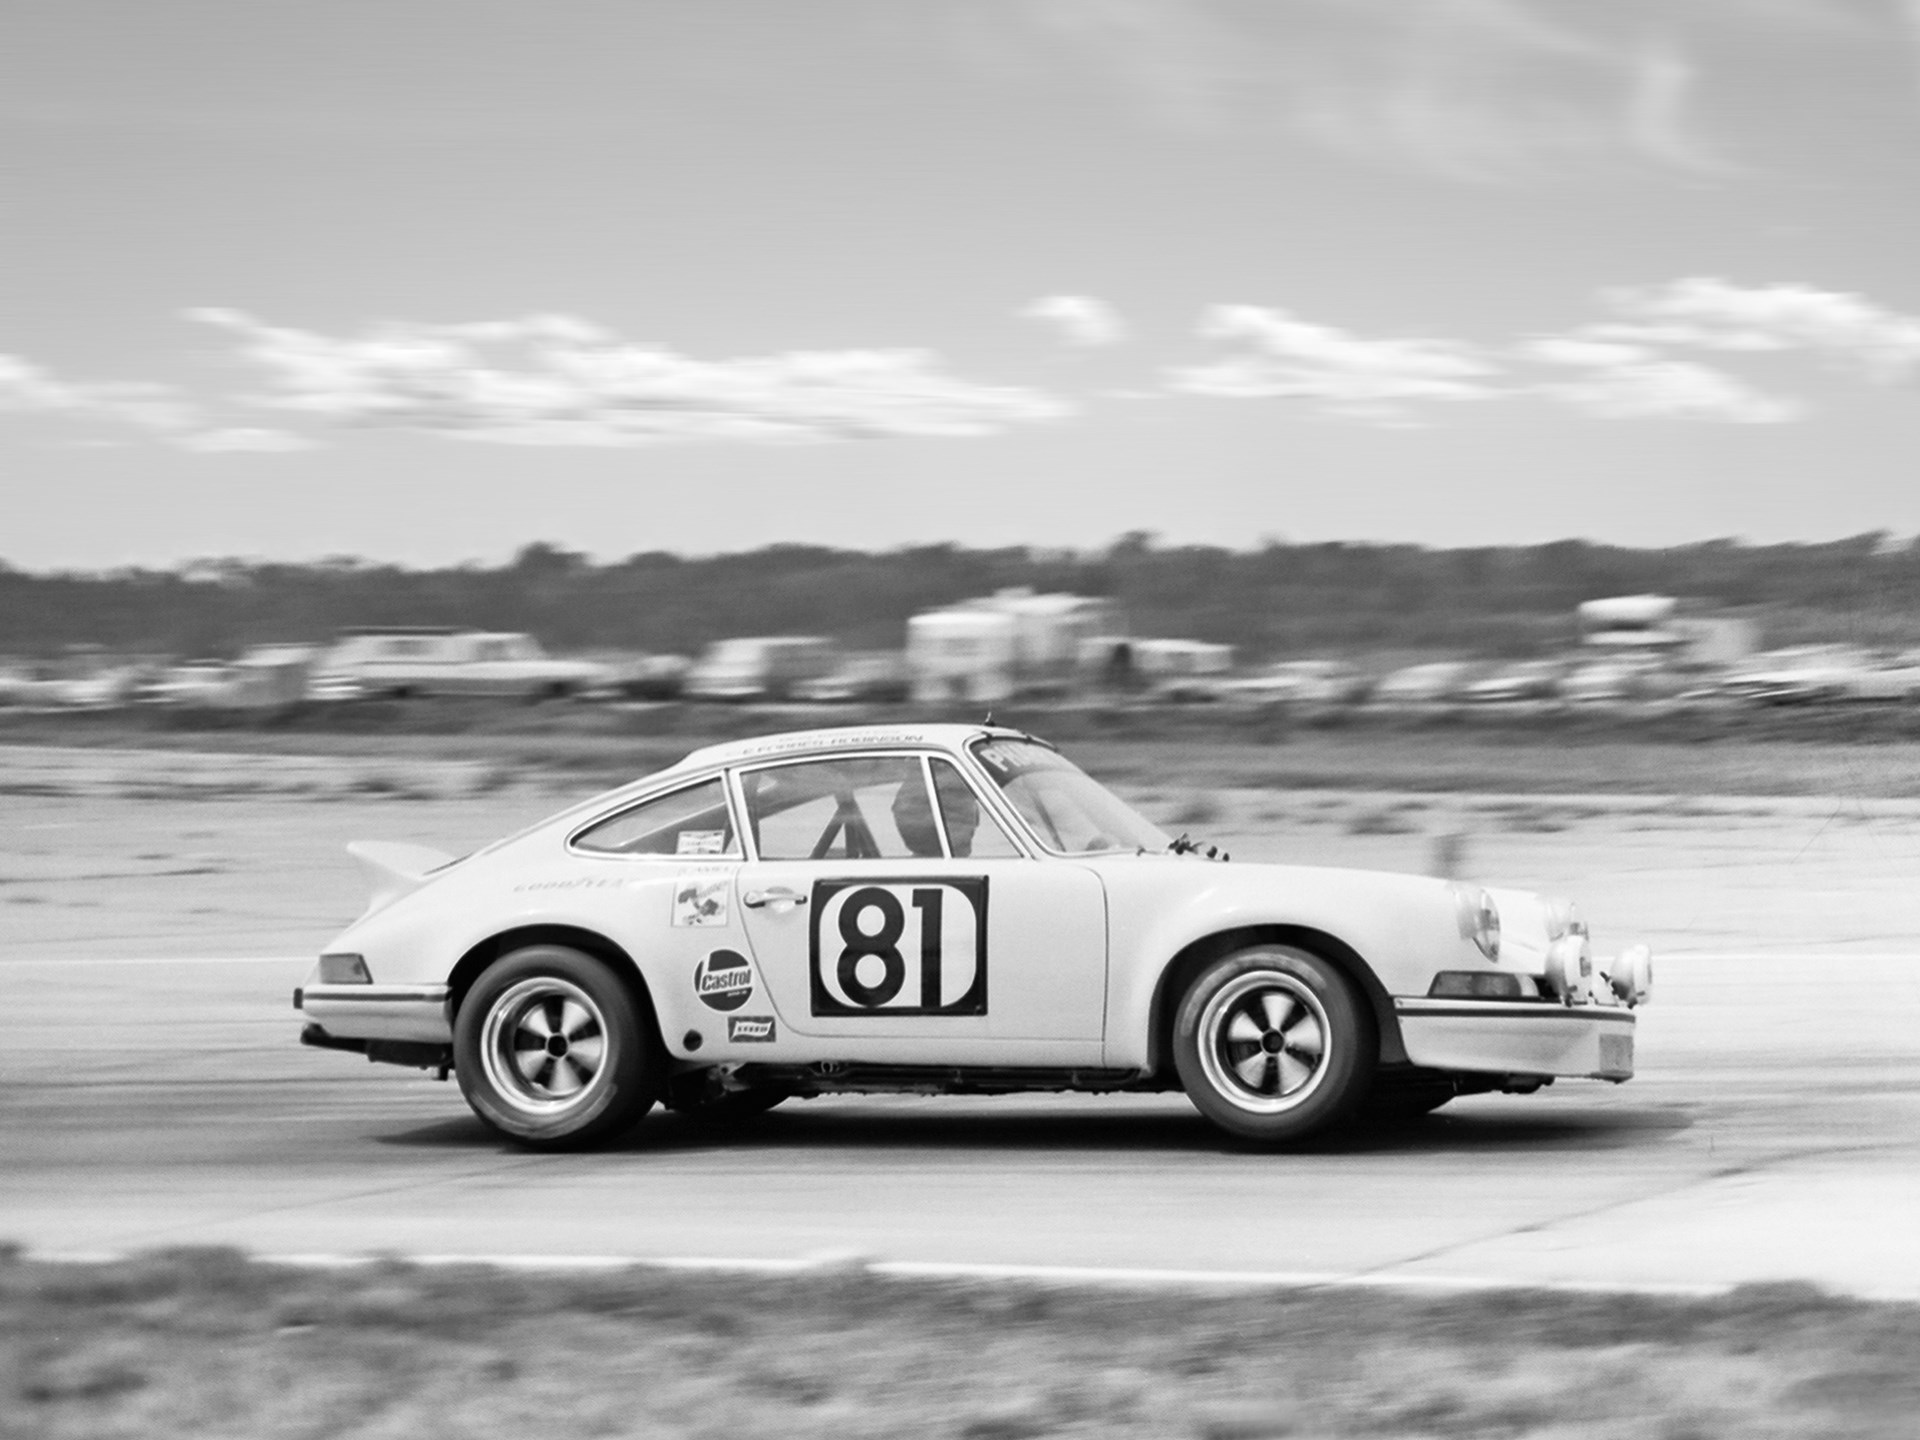 The 2.8 RSR exiting turn 11 at the 12 Hours of Sebring in 1973.